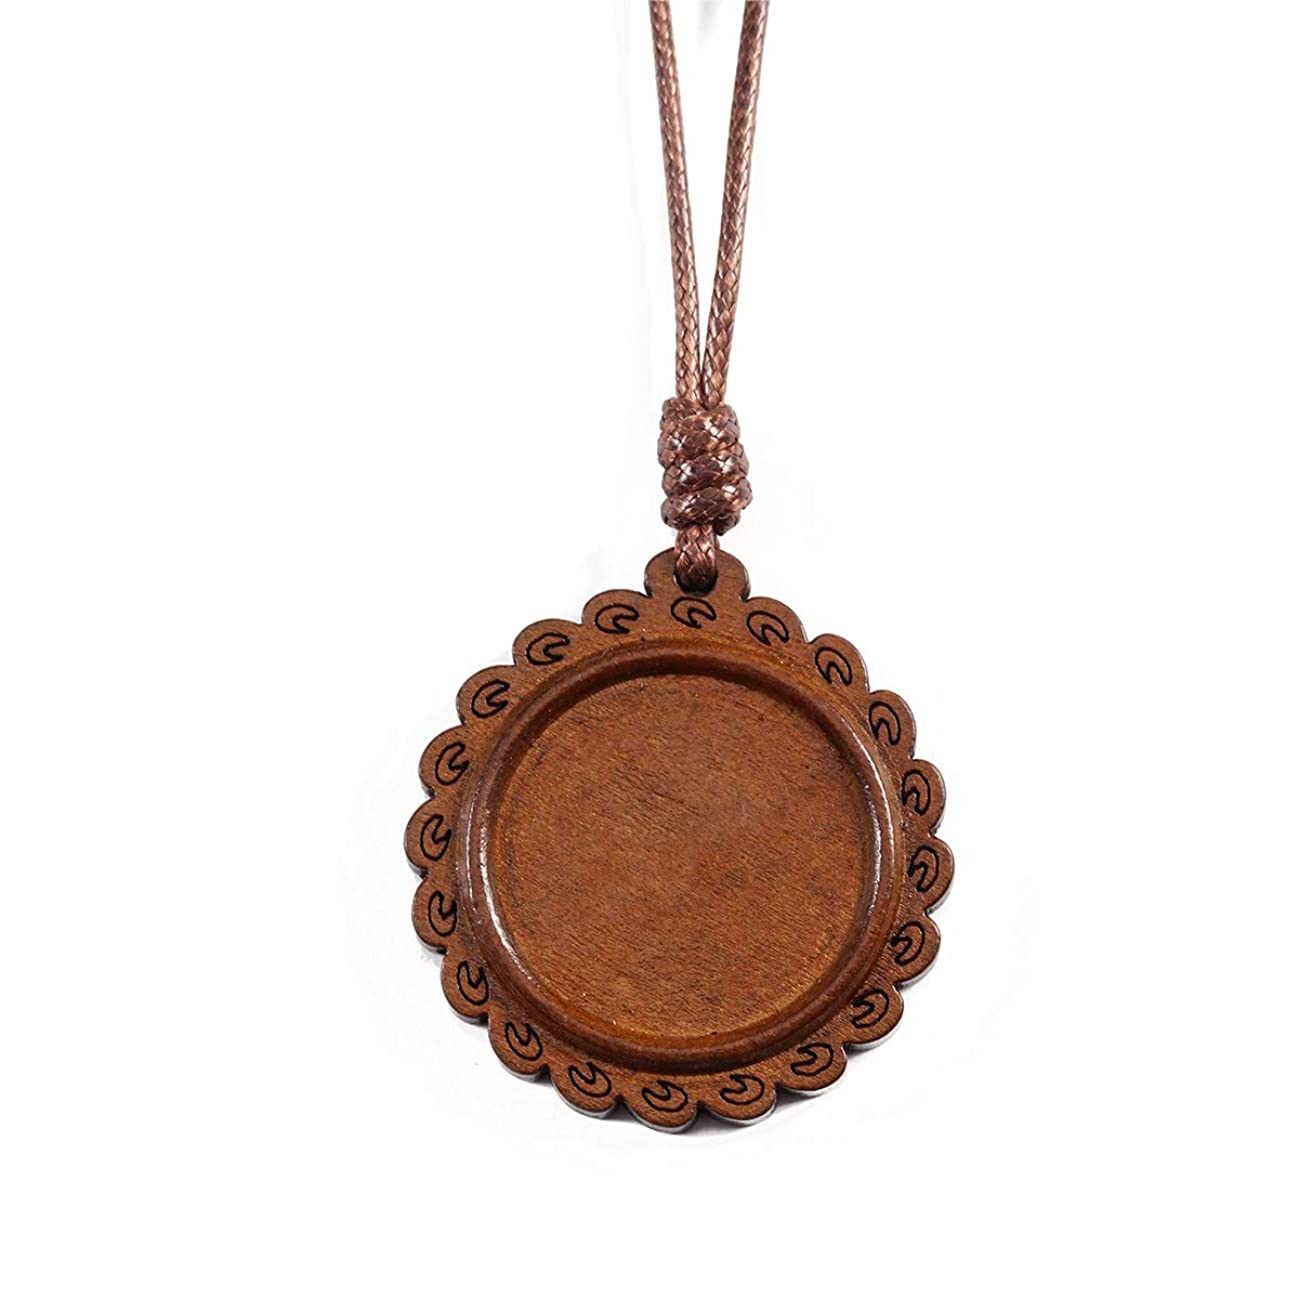 Tiparts 6pcs Wooden Pendant Trays Round Pendant Blanks Cabochon Settings Charms Adjustable Nacklaces(Style01)